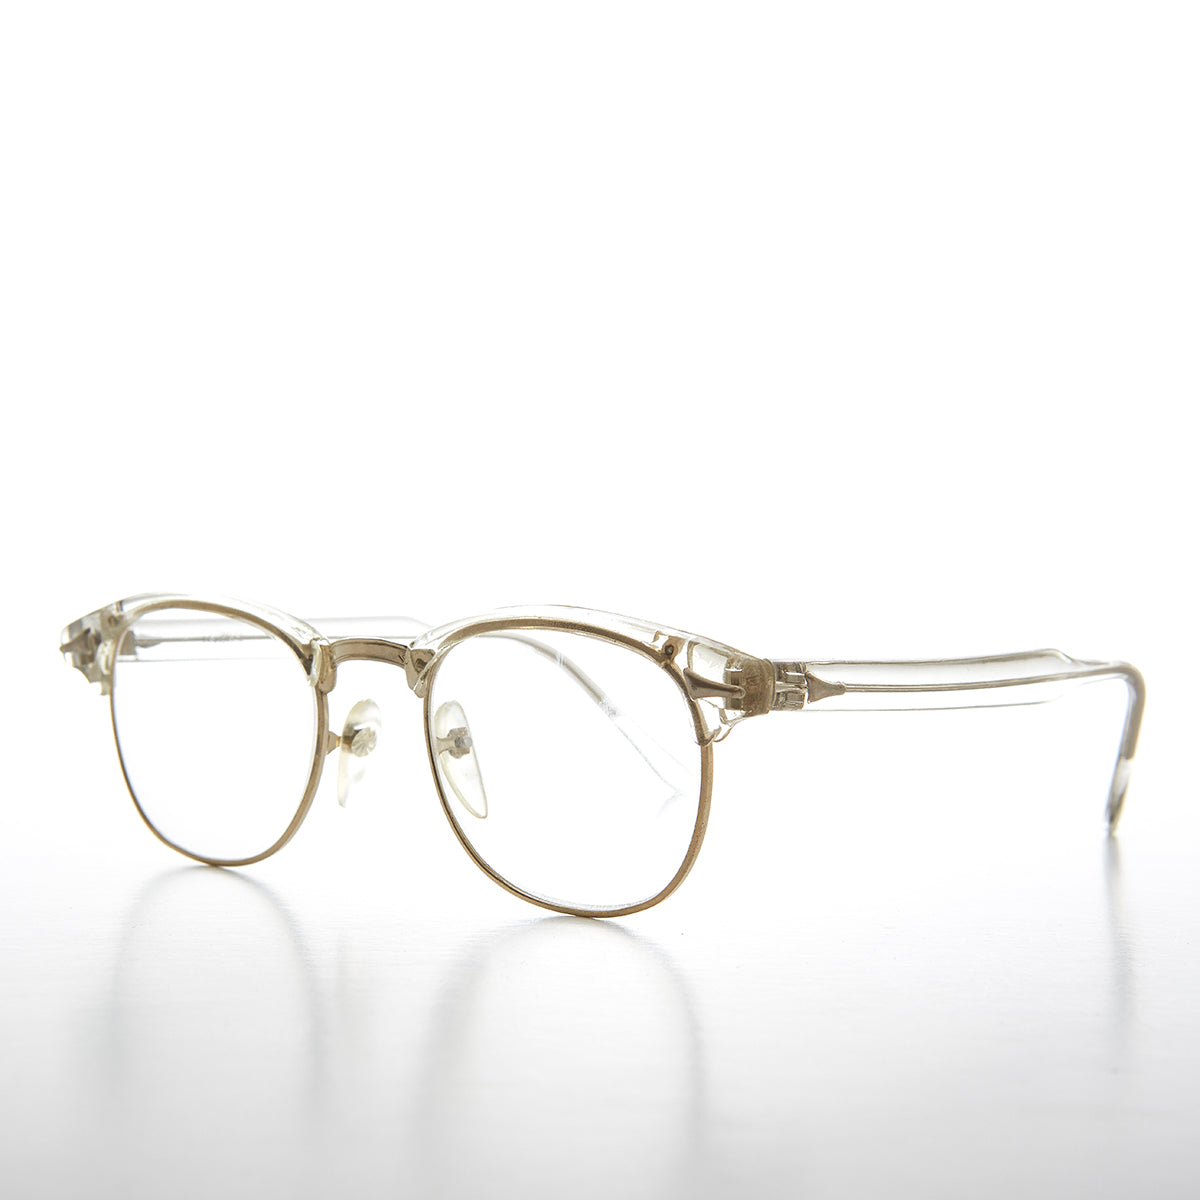 ceb8eb8642 Clear Frame Hipster Clear Lens Vintage Glasses - Sanders – Sunglass ...